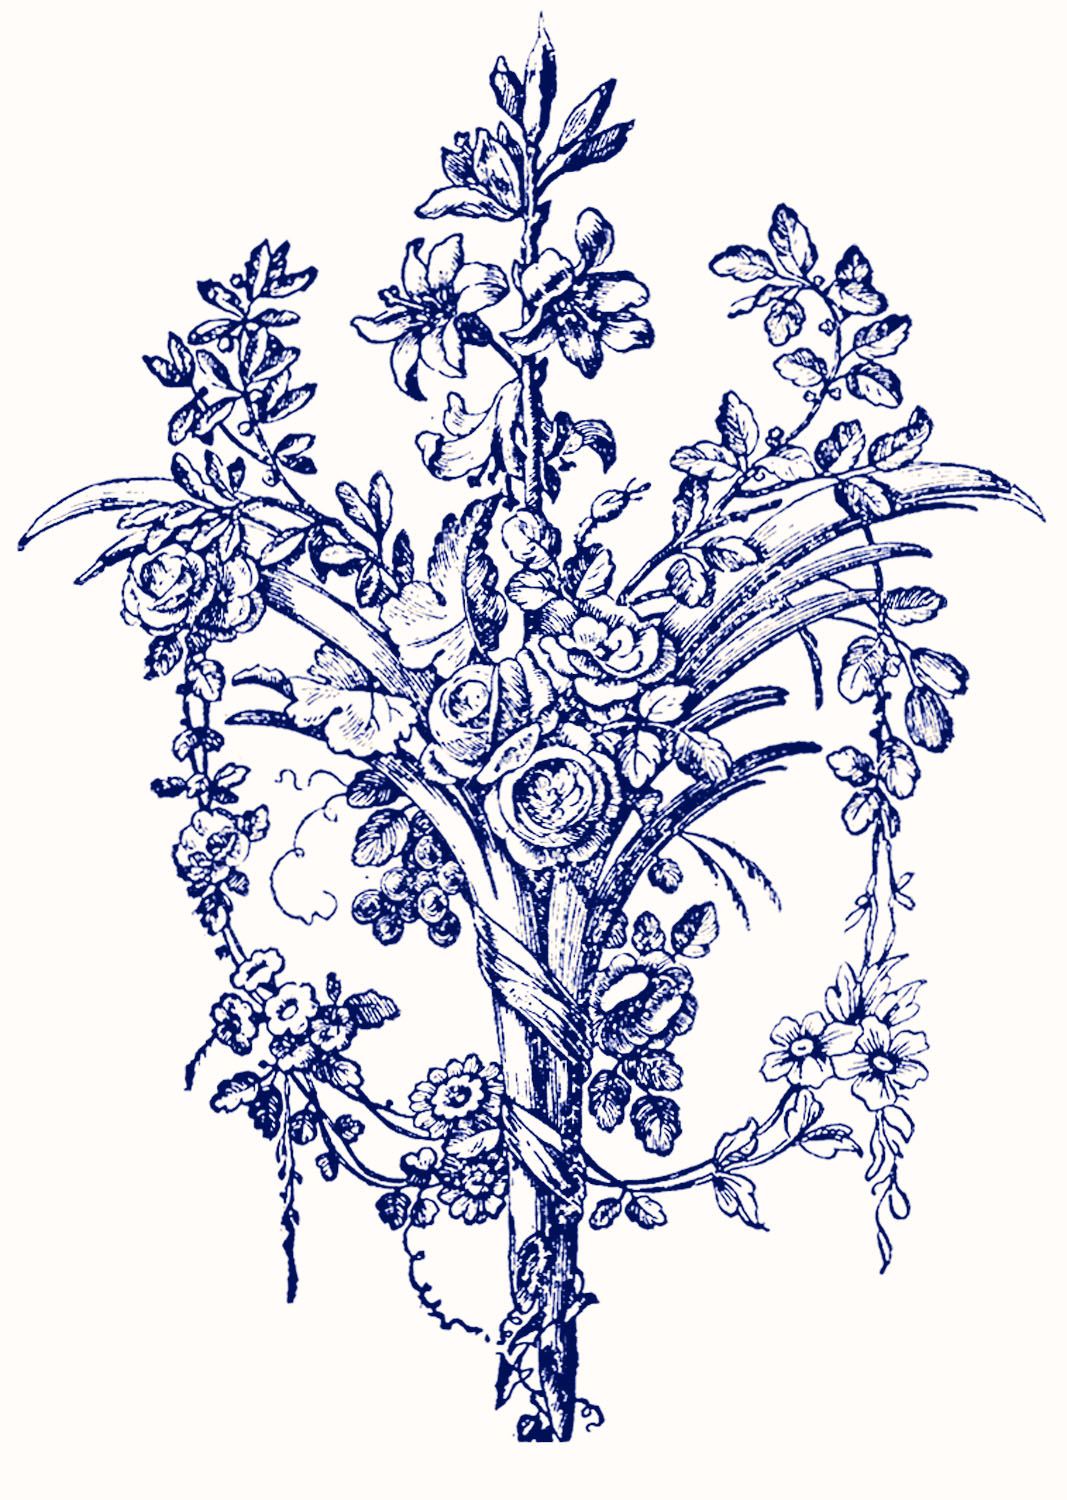 Italian ornaments - Vintage Graphic Images French Ornaments With Roses